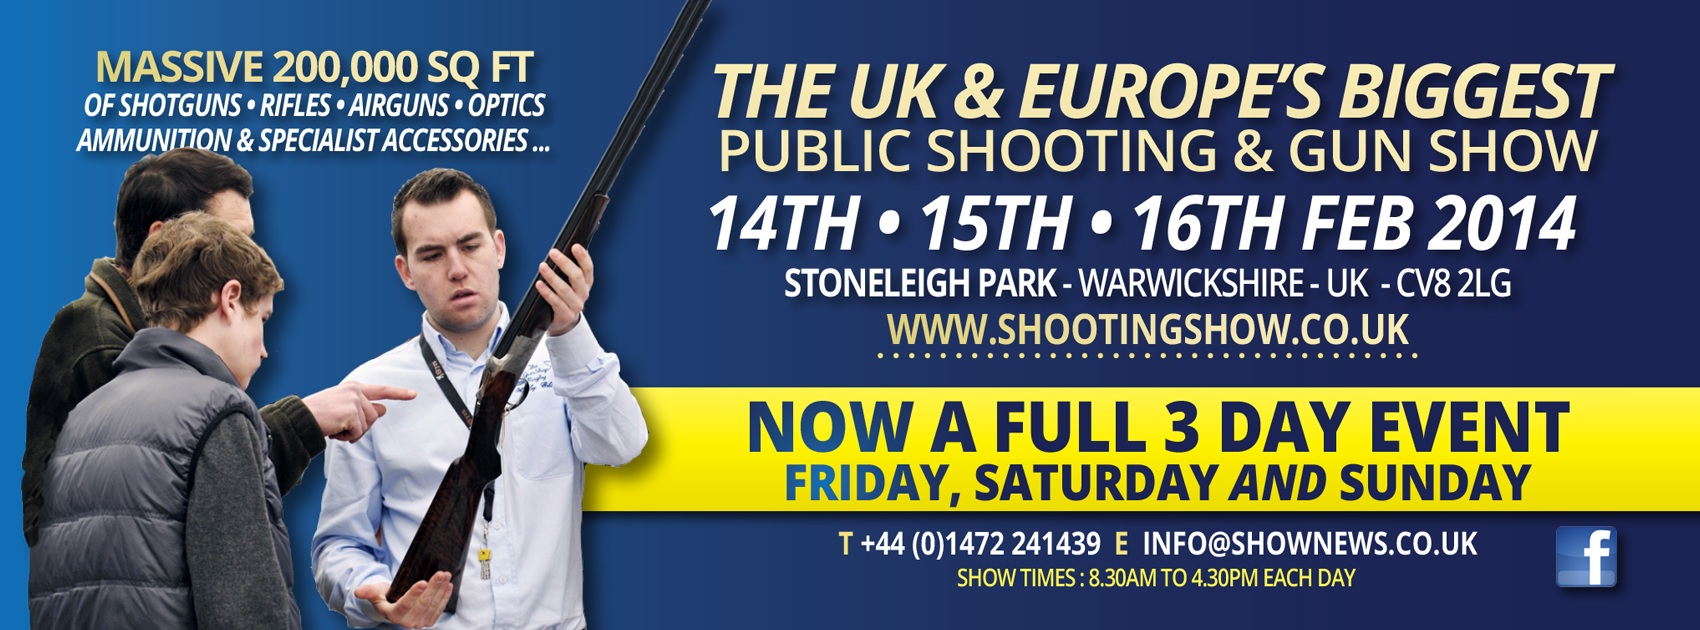 The Great British Shooting Show 2014